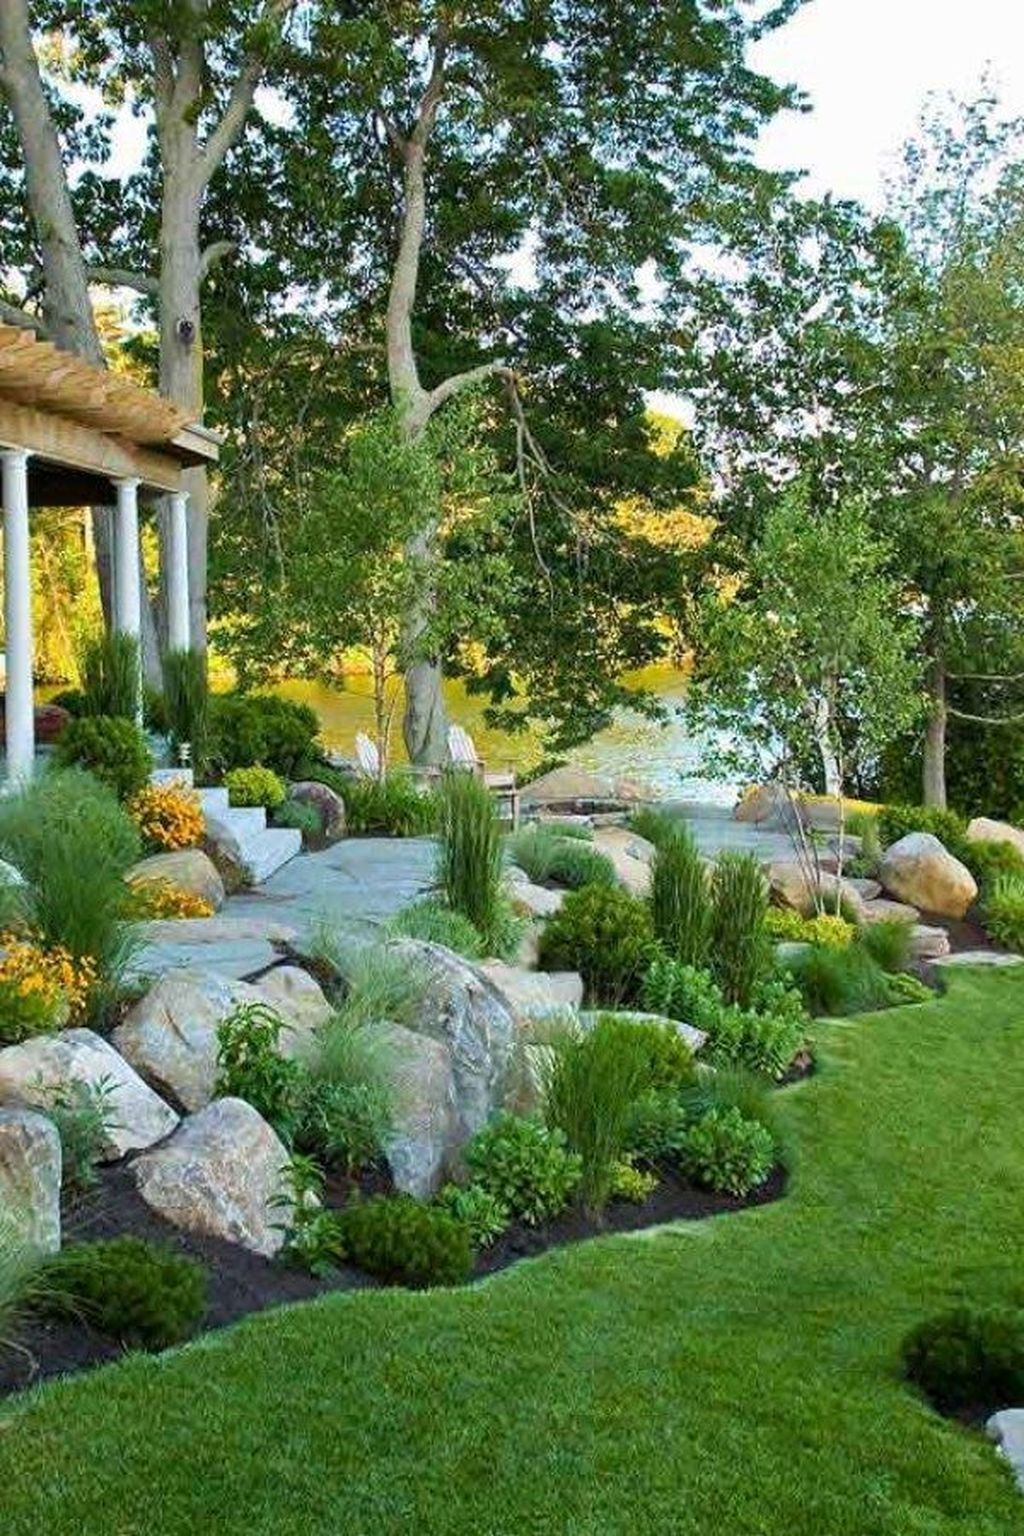 Get The Best Backyard Landscape Design Ideas In This Article And Get Ready To Convert Backyard Landscaping Designs Rock Garden Landscaping Rock Garden Design